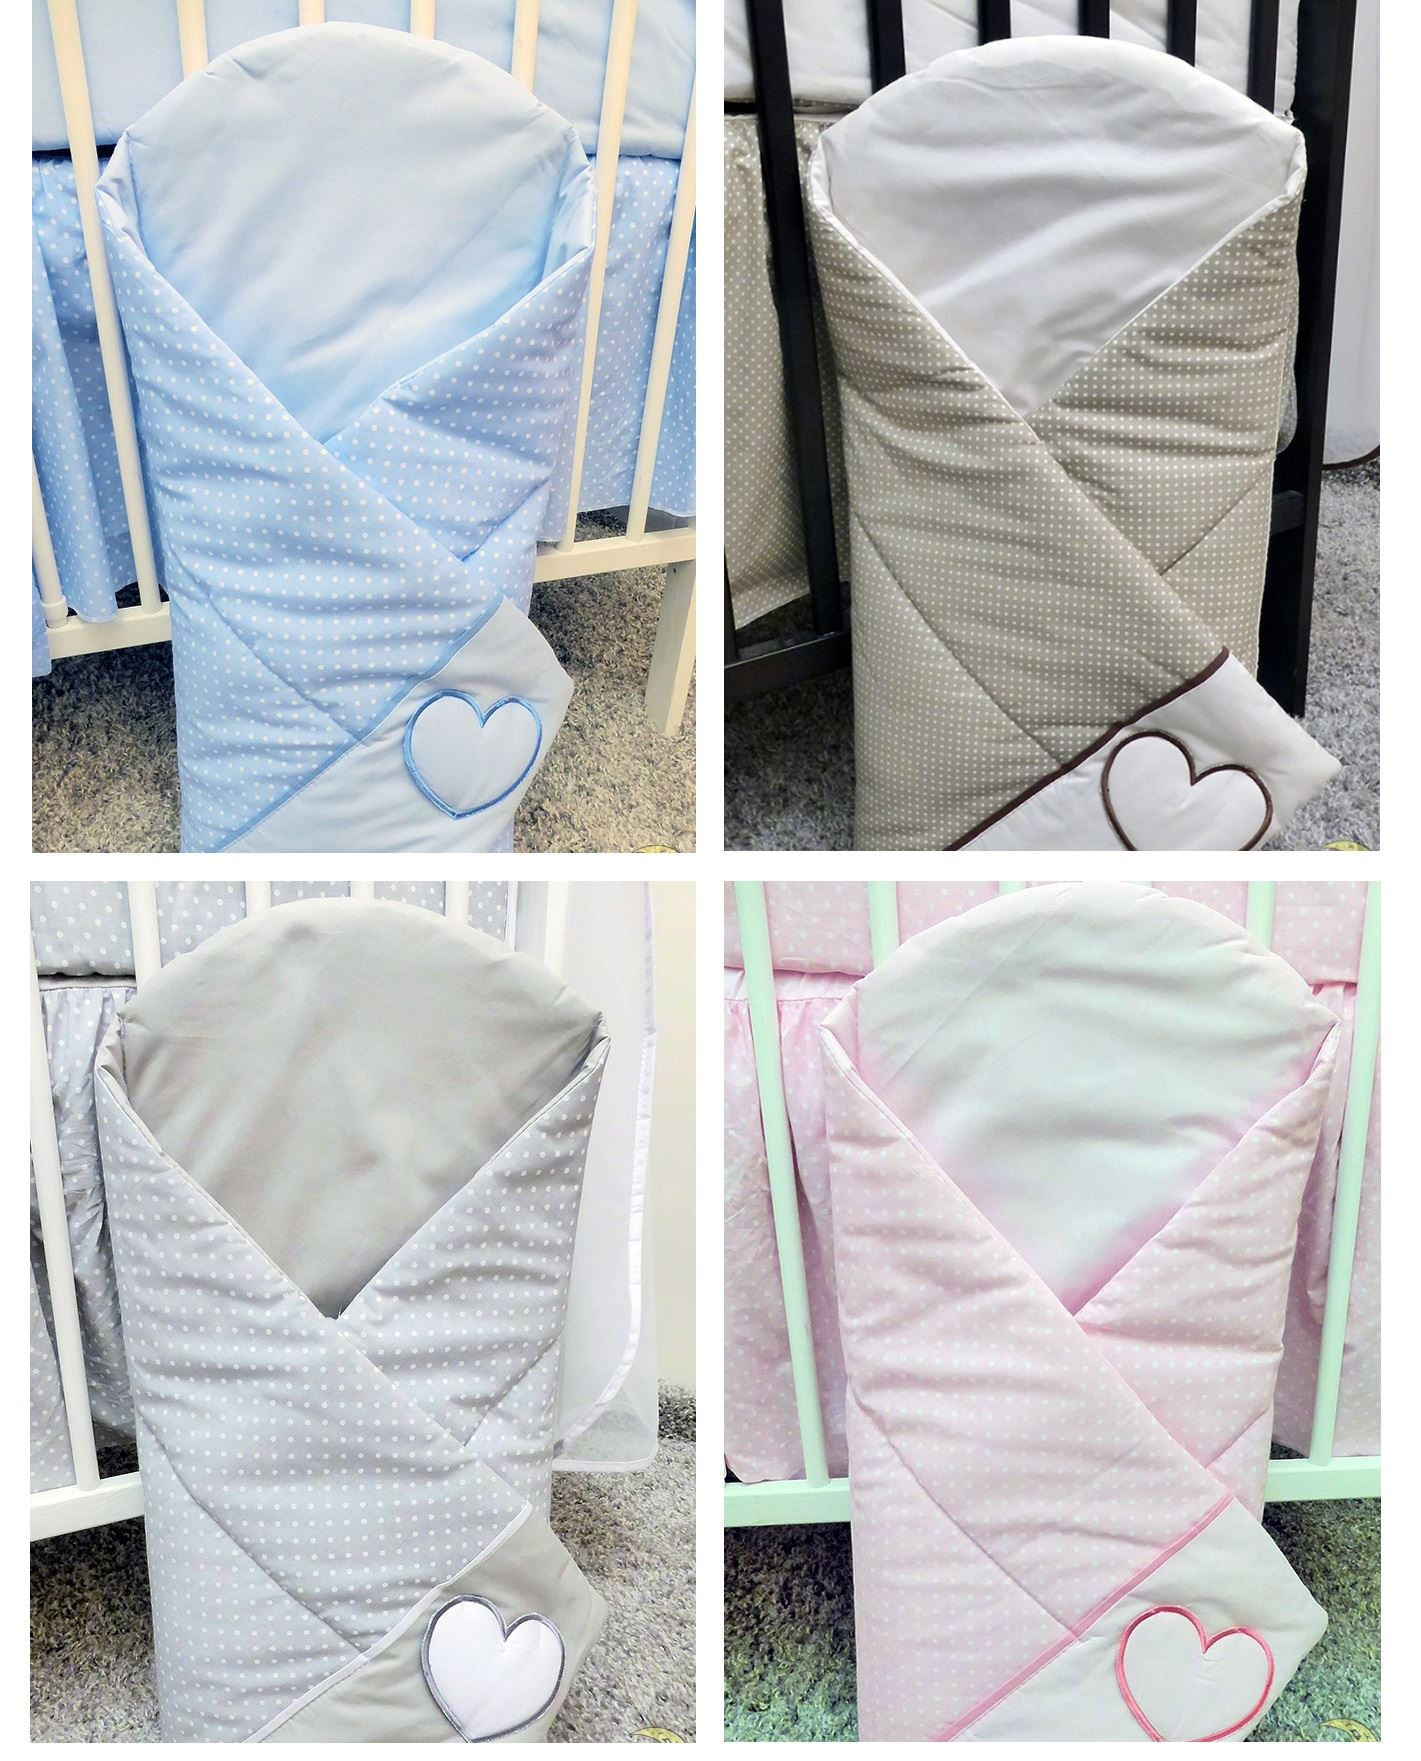 Swaddle Wrap Newborn Embroidered Cotton Quilt Blanket Baby Swaddling